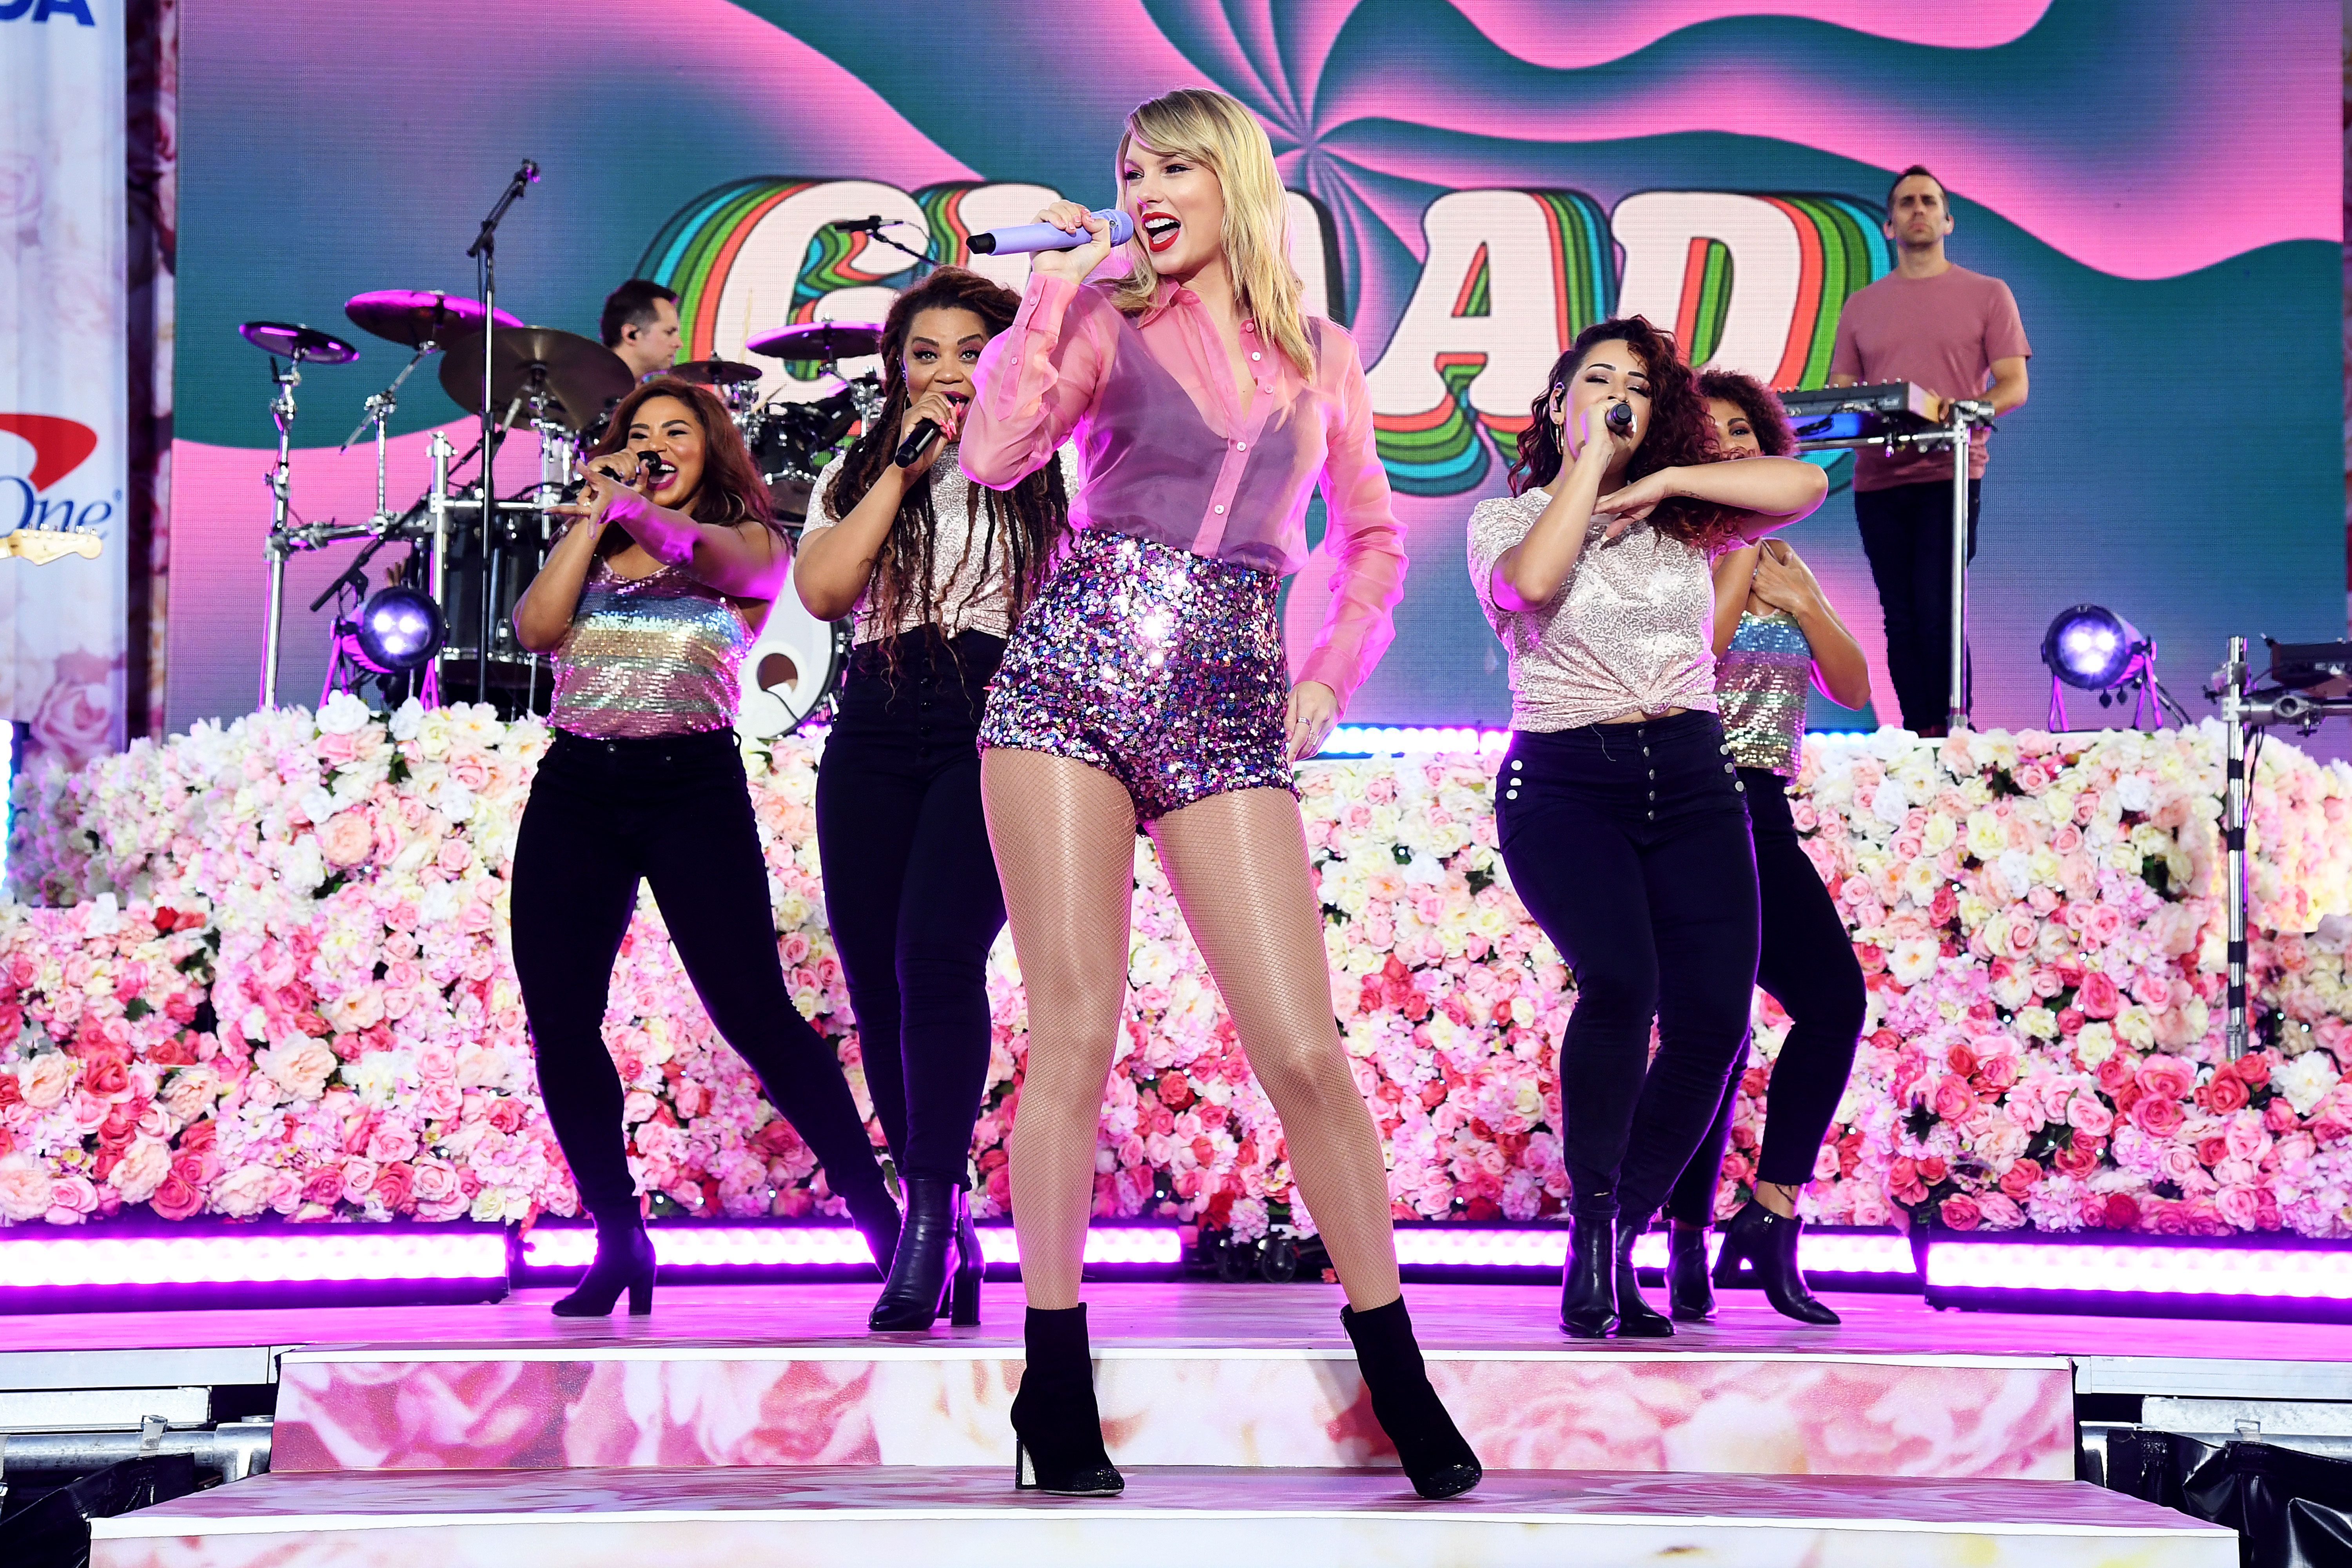 Taylor Swift's Lover Songs Ranked by Queer Energy